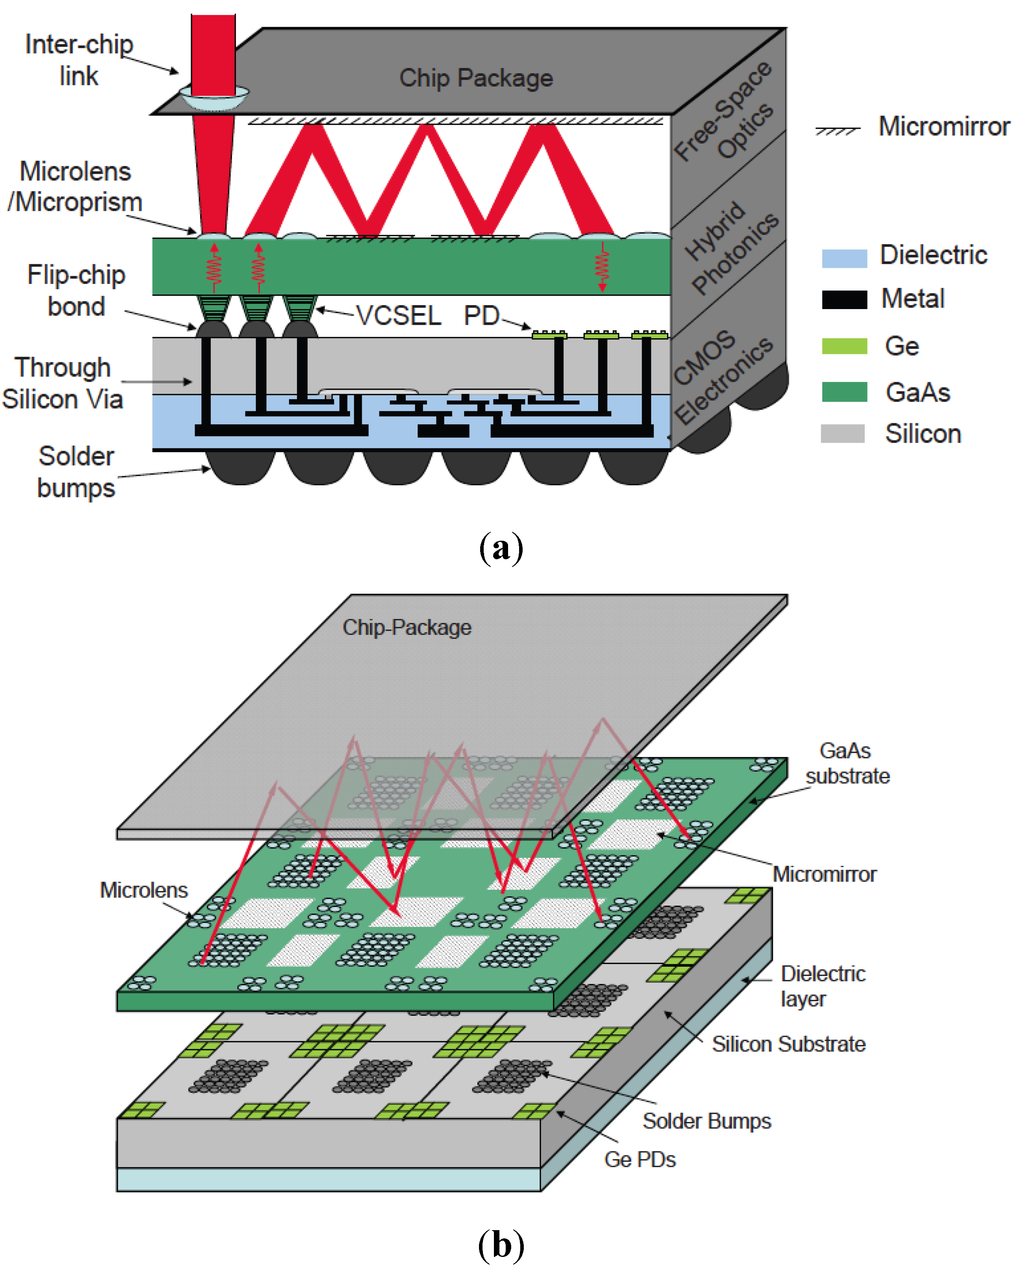 Photonics Special Issue Hybrid And Heterogeneous Technologies In Circuit Reviews Online Shopping On Dual Integrated Open Accessreview Transfer Printed Nanomembranes For Heterogeneously Membrane